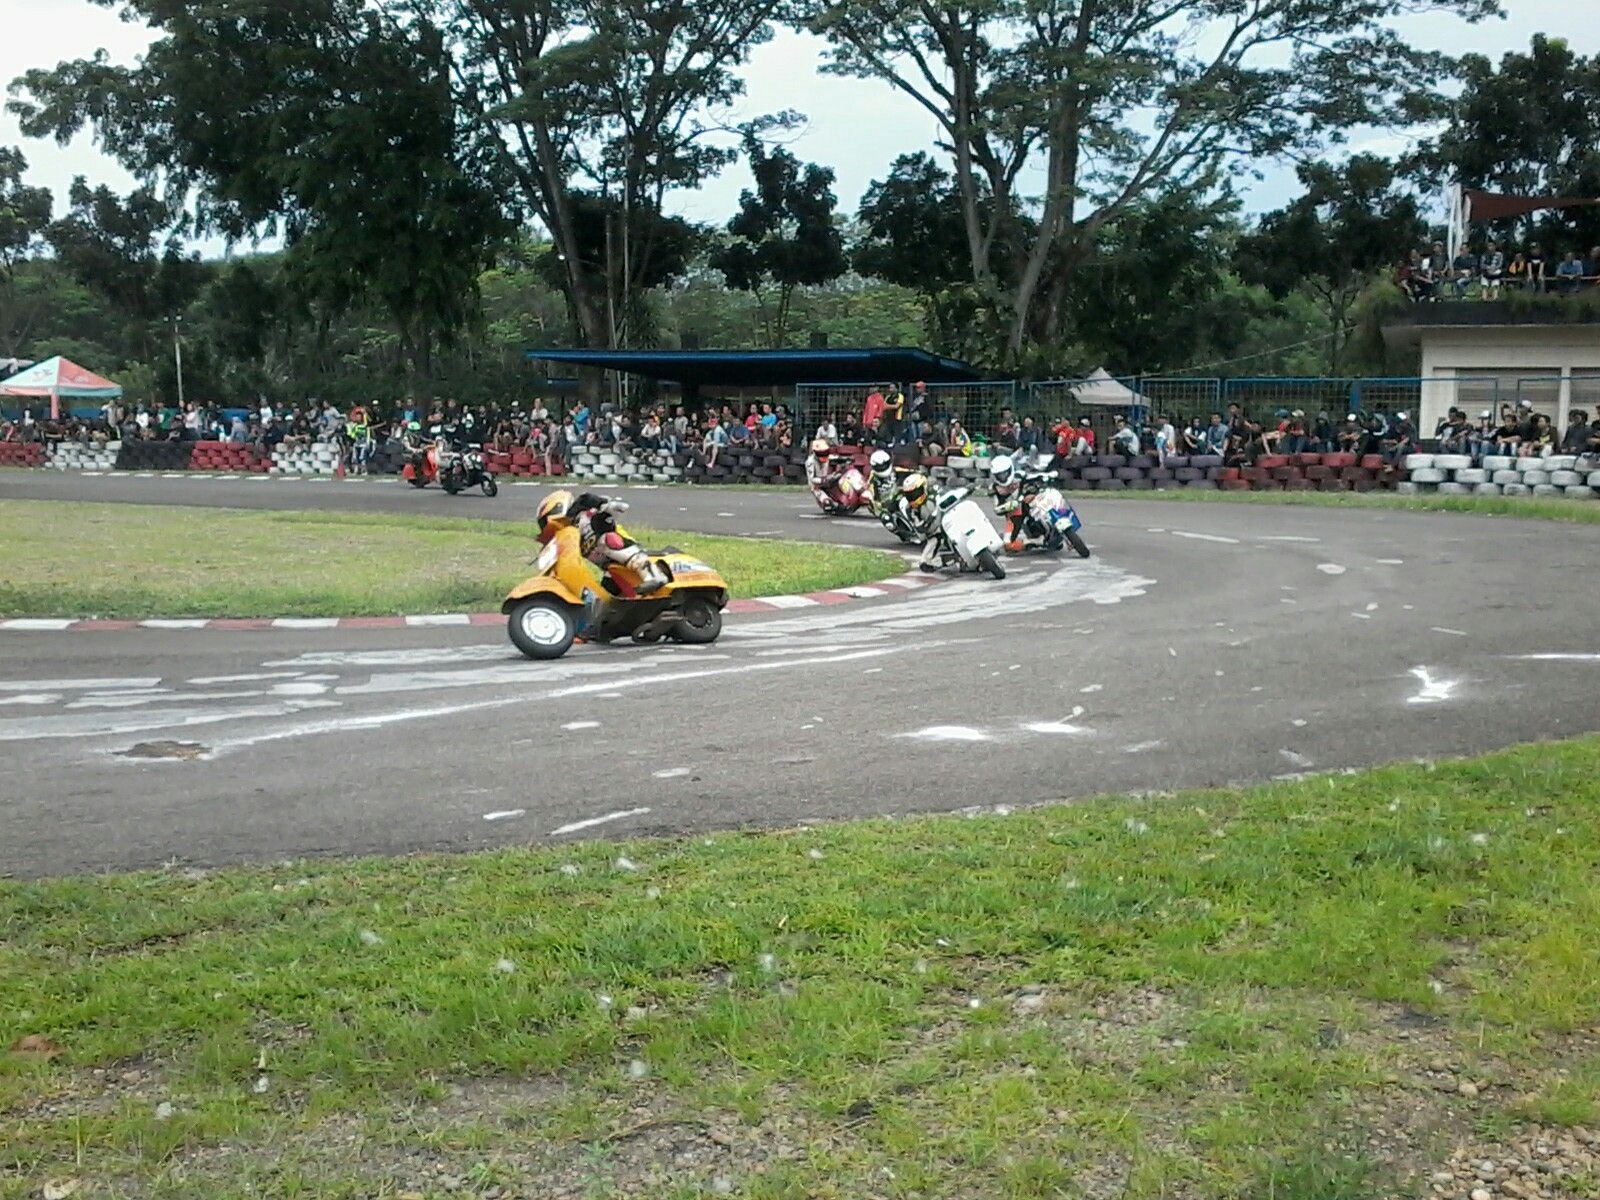 Circuit Sentul : Sentul international karting circuit vespa balap indonesia